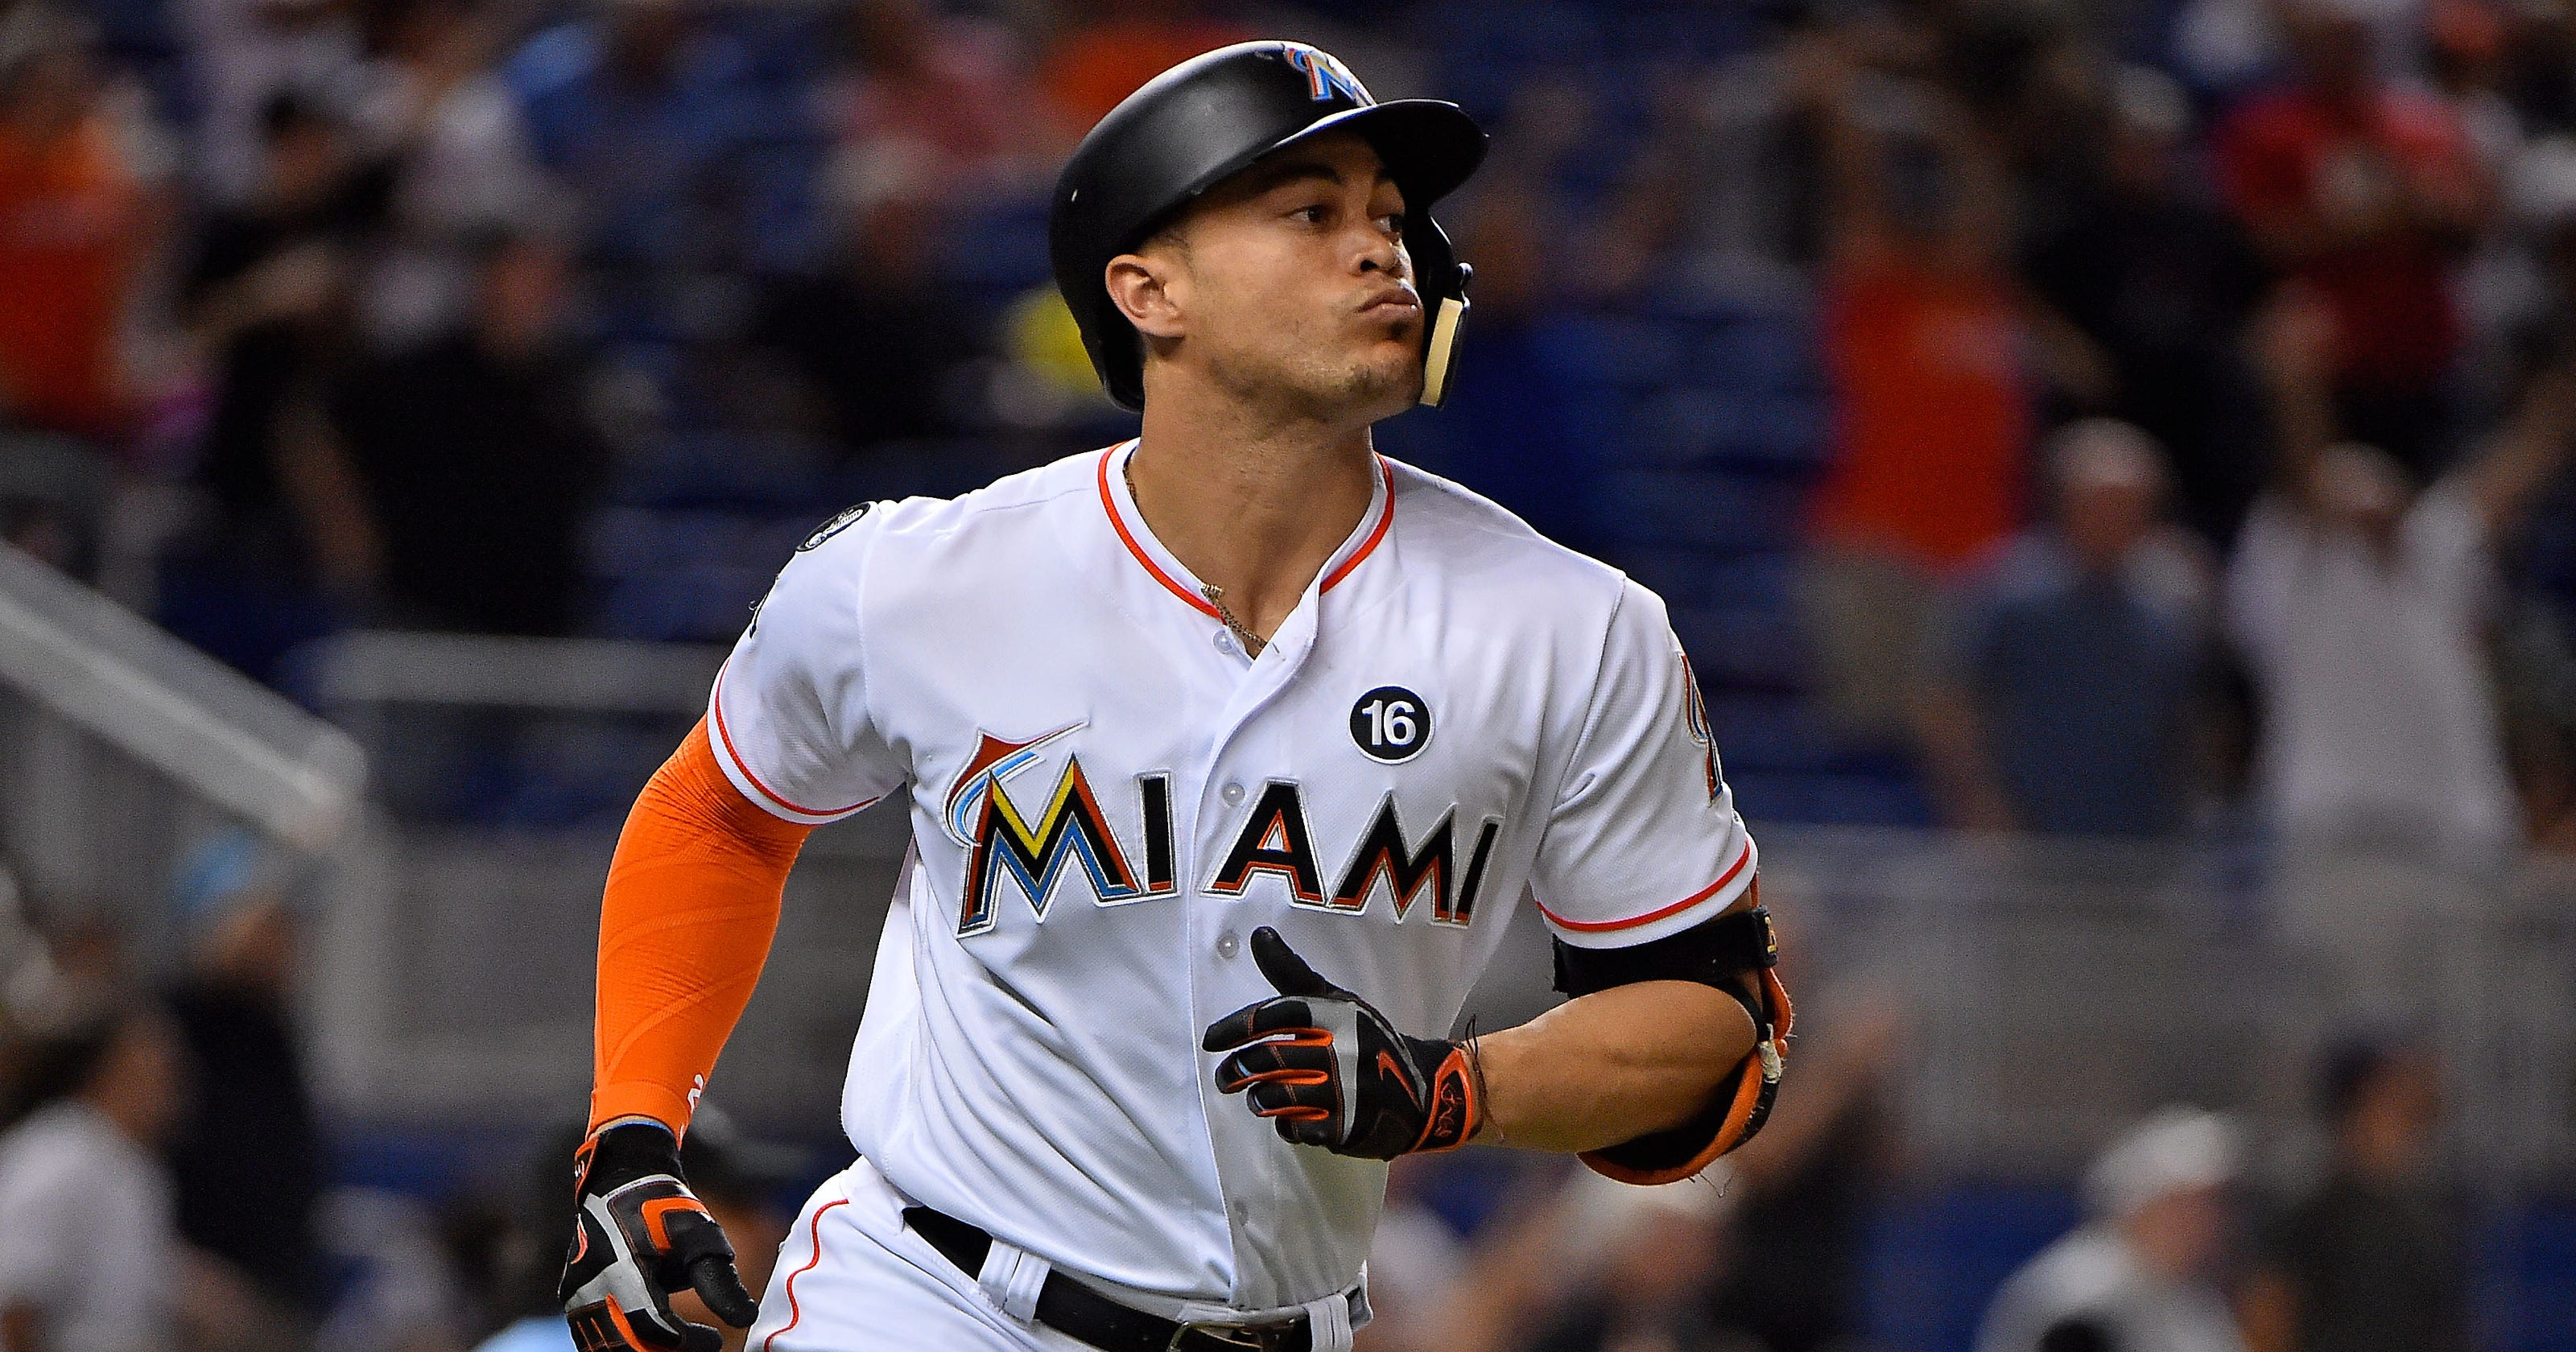 finest selection b1e06 f7ffe Giancarlo Stanton: NL MVP narrost trade list two four teams